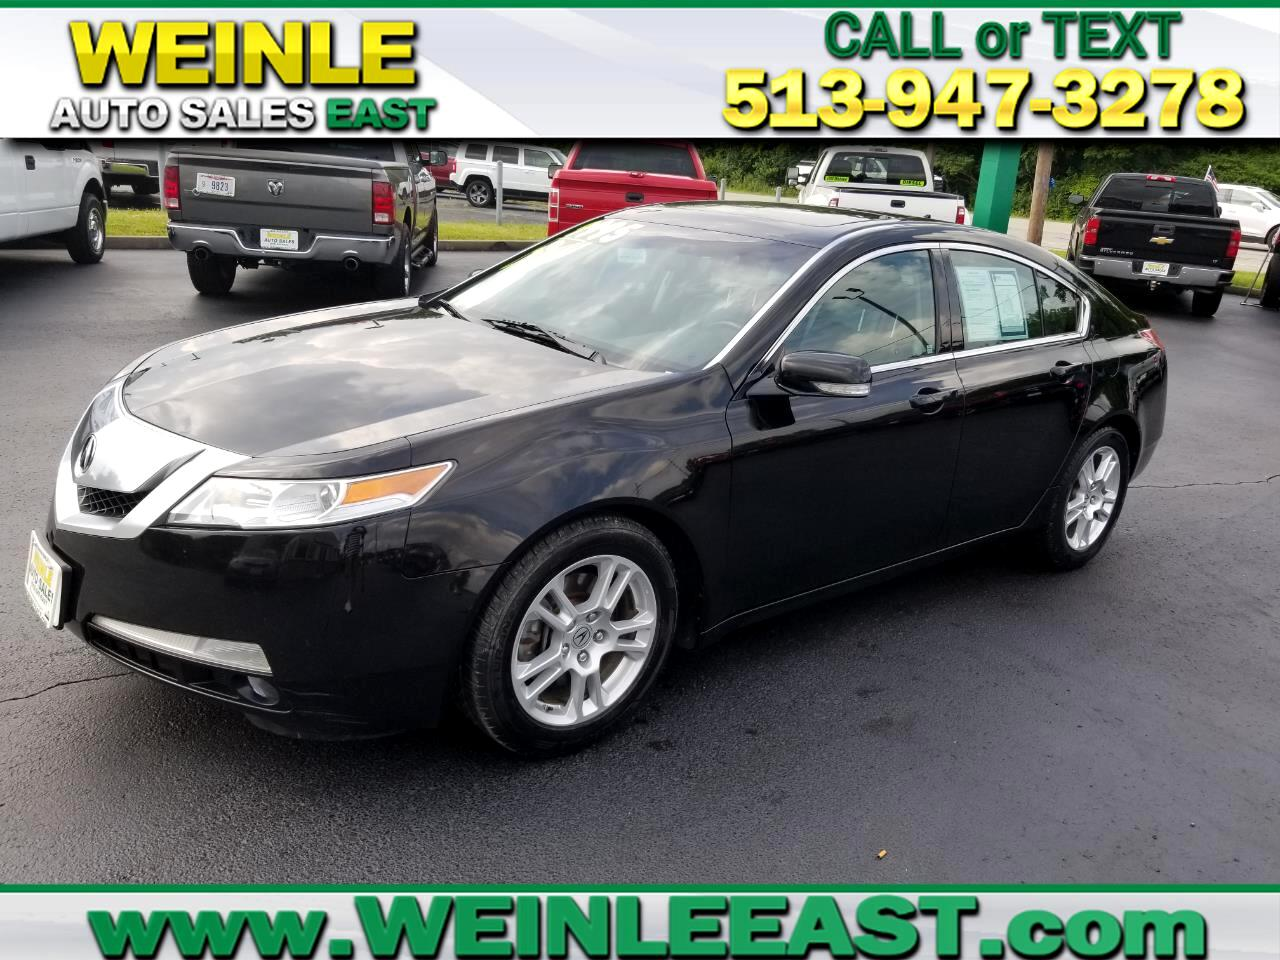 2010 Acura TL LEATHER SUNROOF CLEAN NEW TIMING BELT AND WATER PU